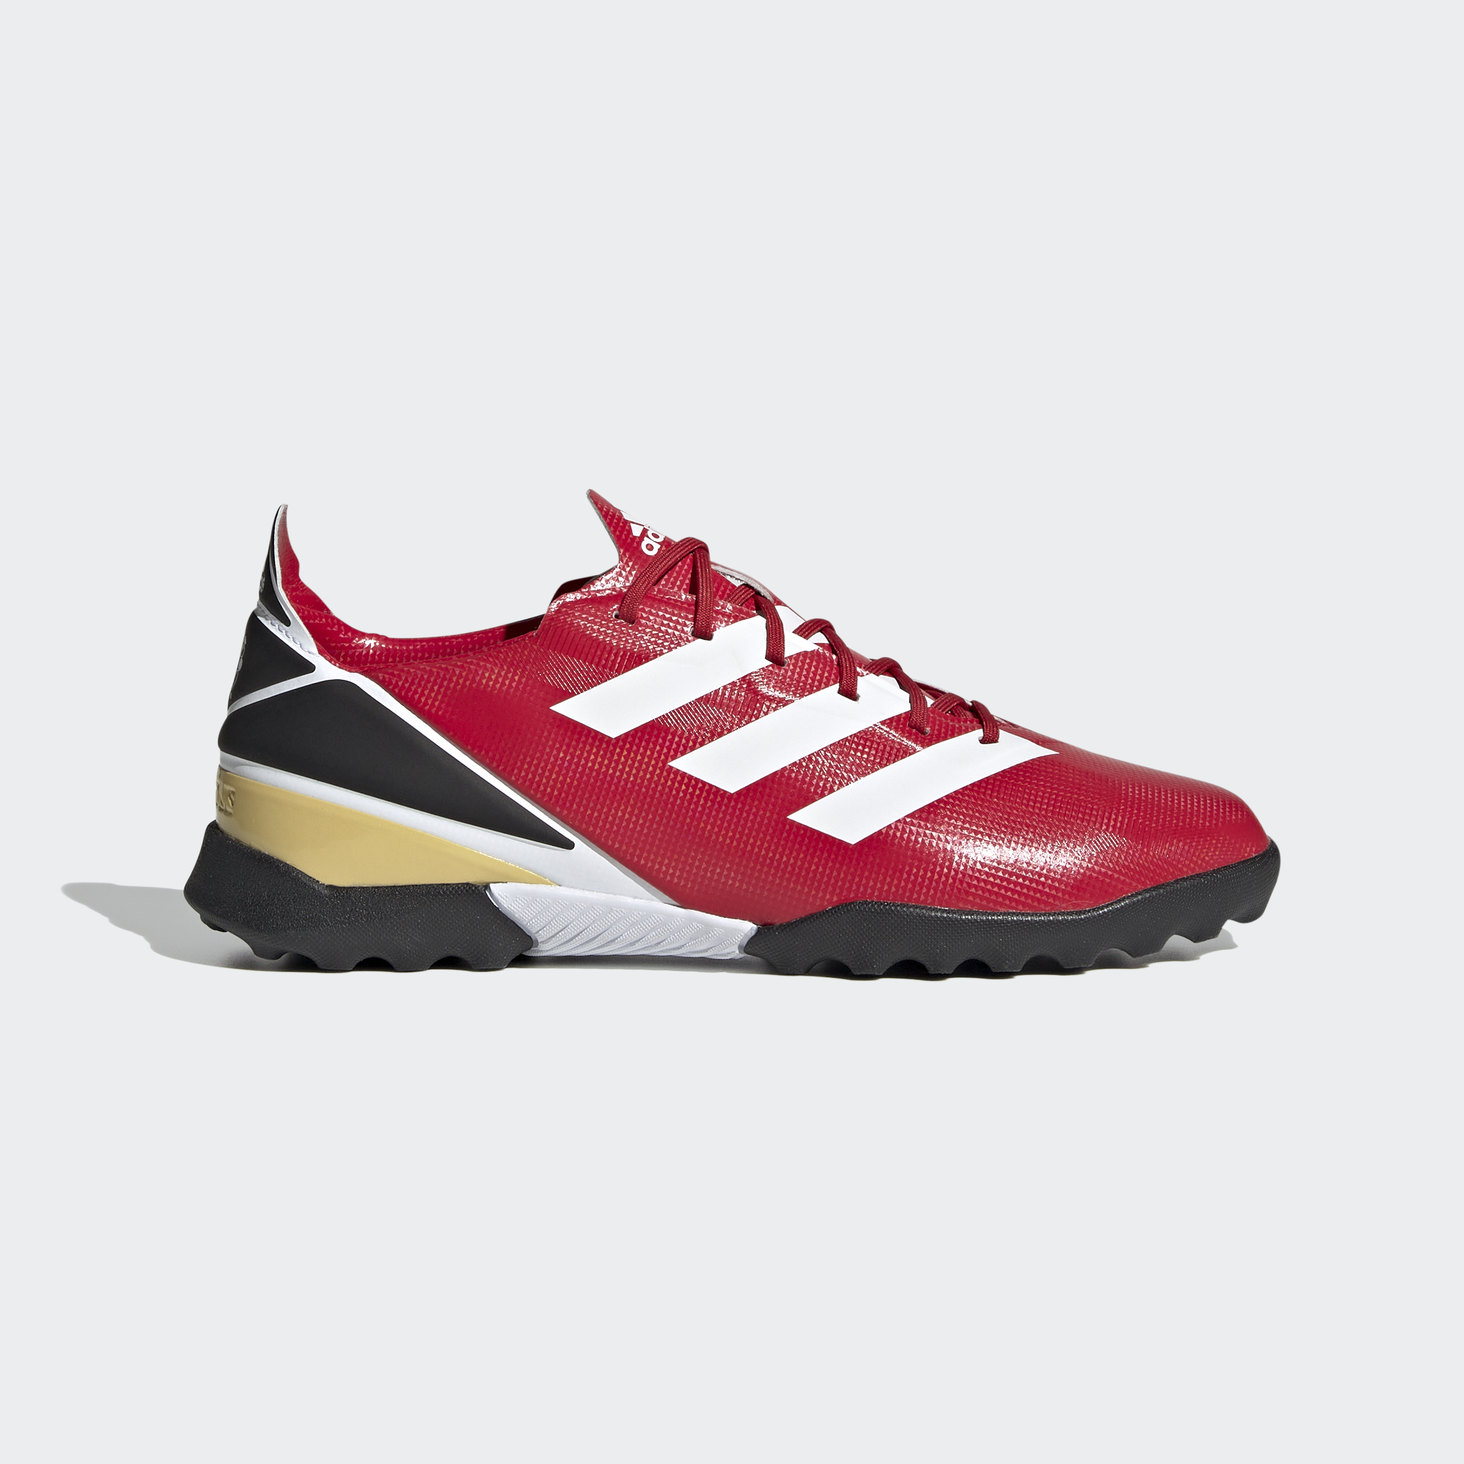 GAMEMODE TURF BOOTS